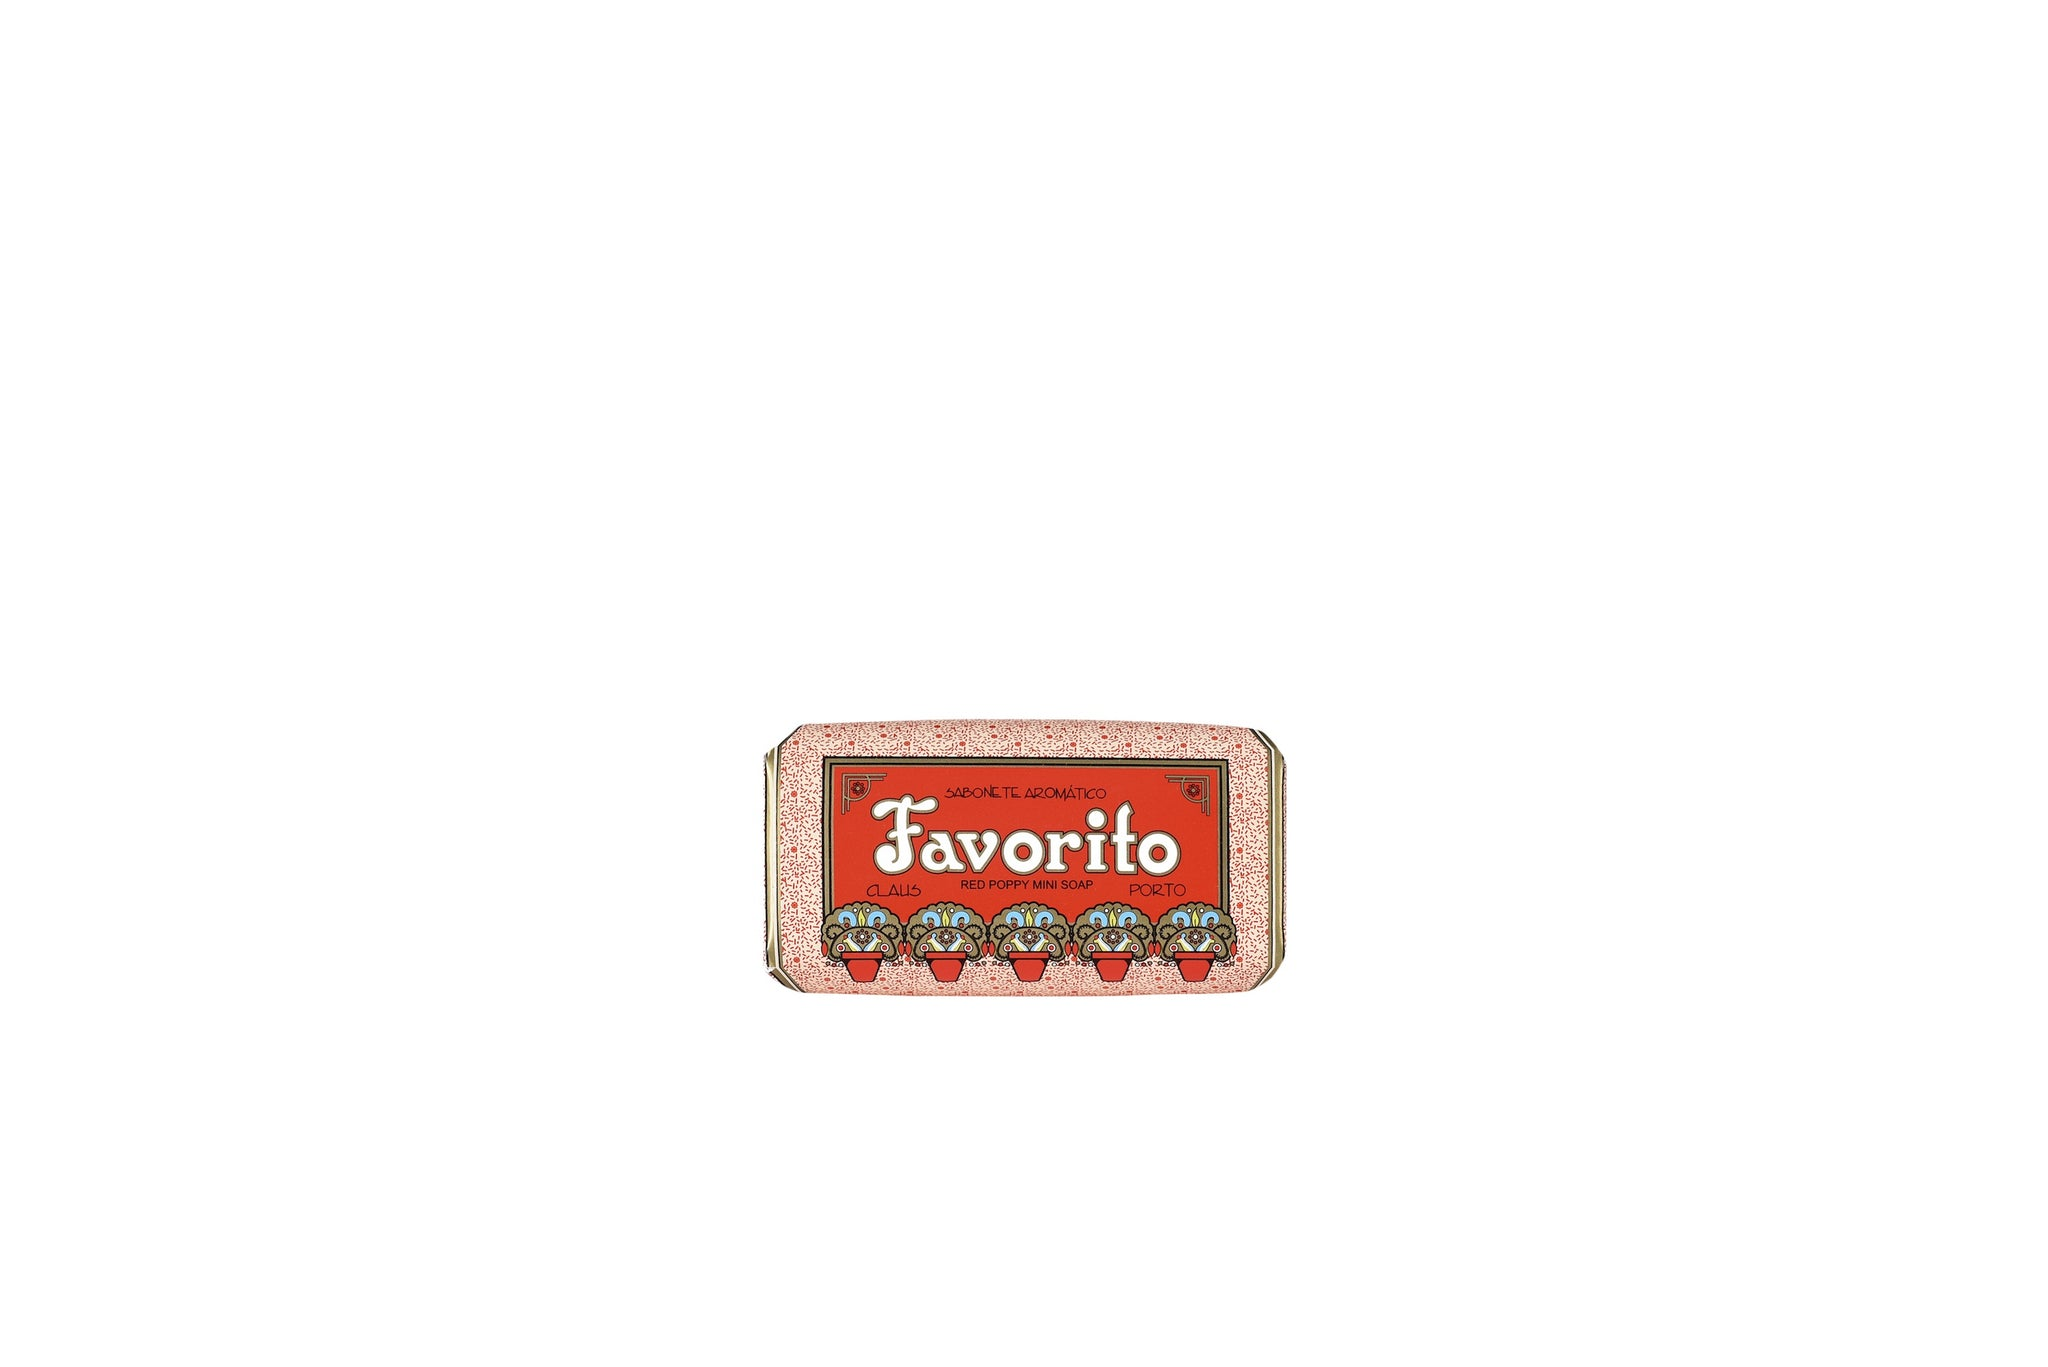 Favorito - Red Poppy, Deco Mini Soap, 50g